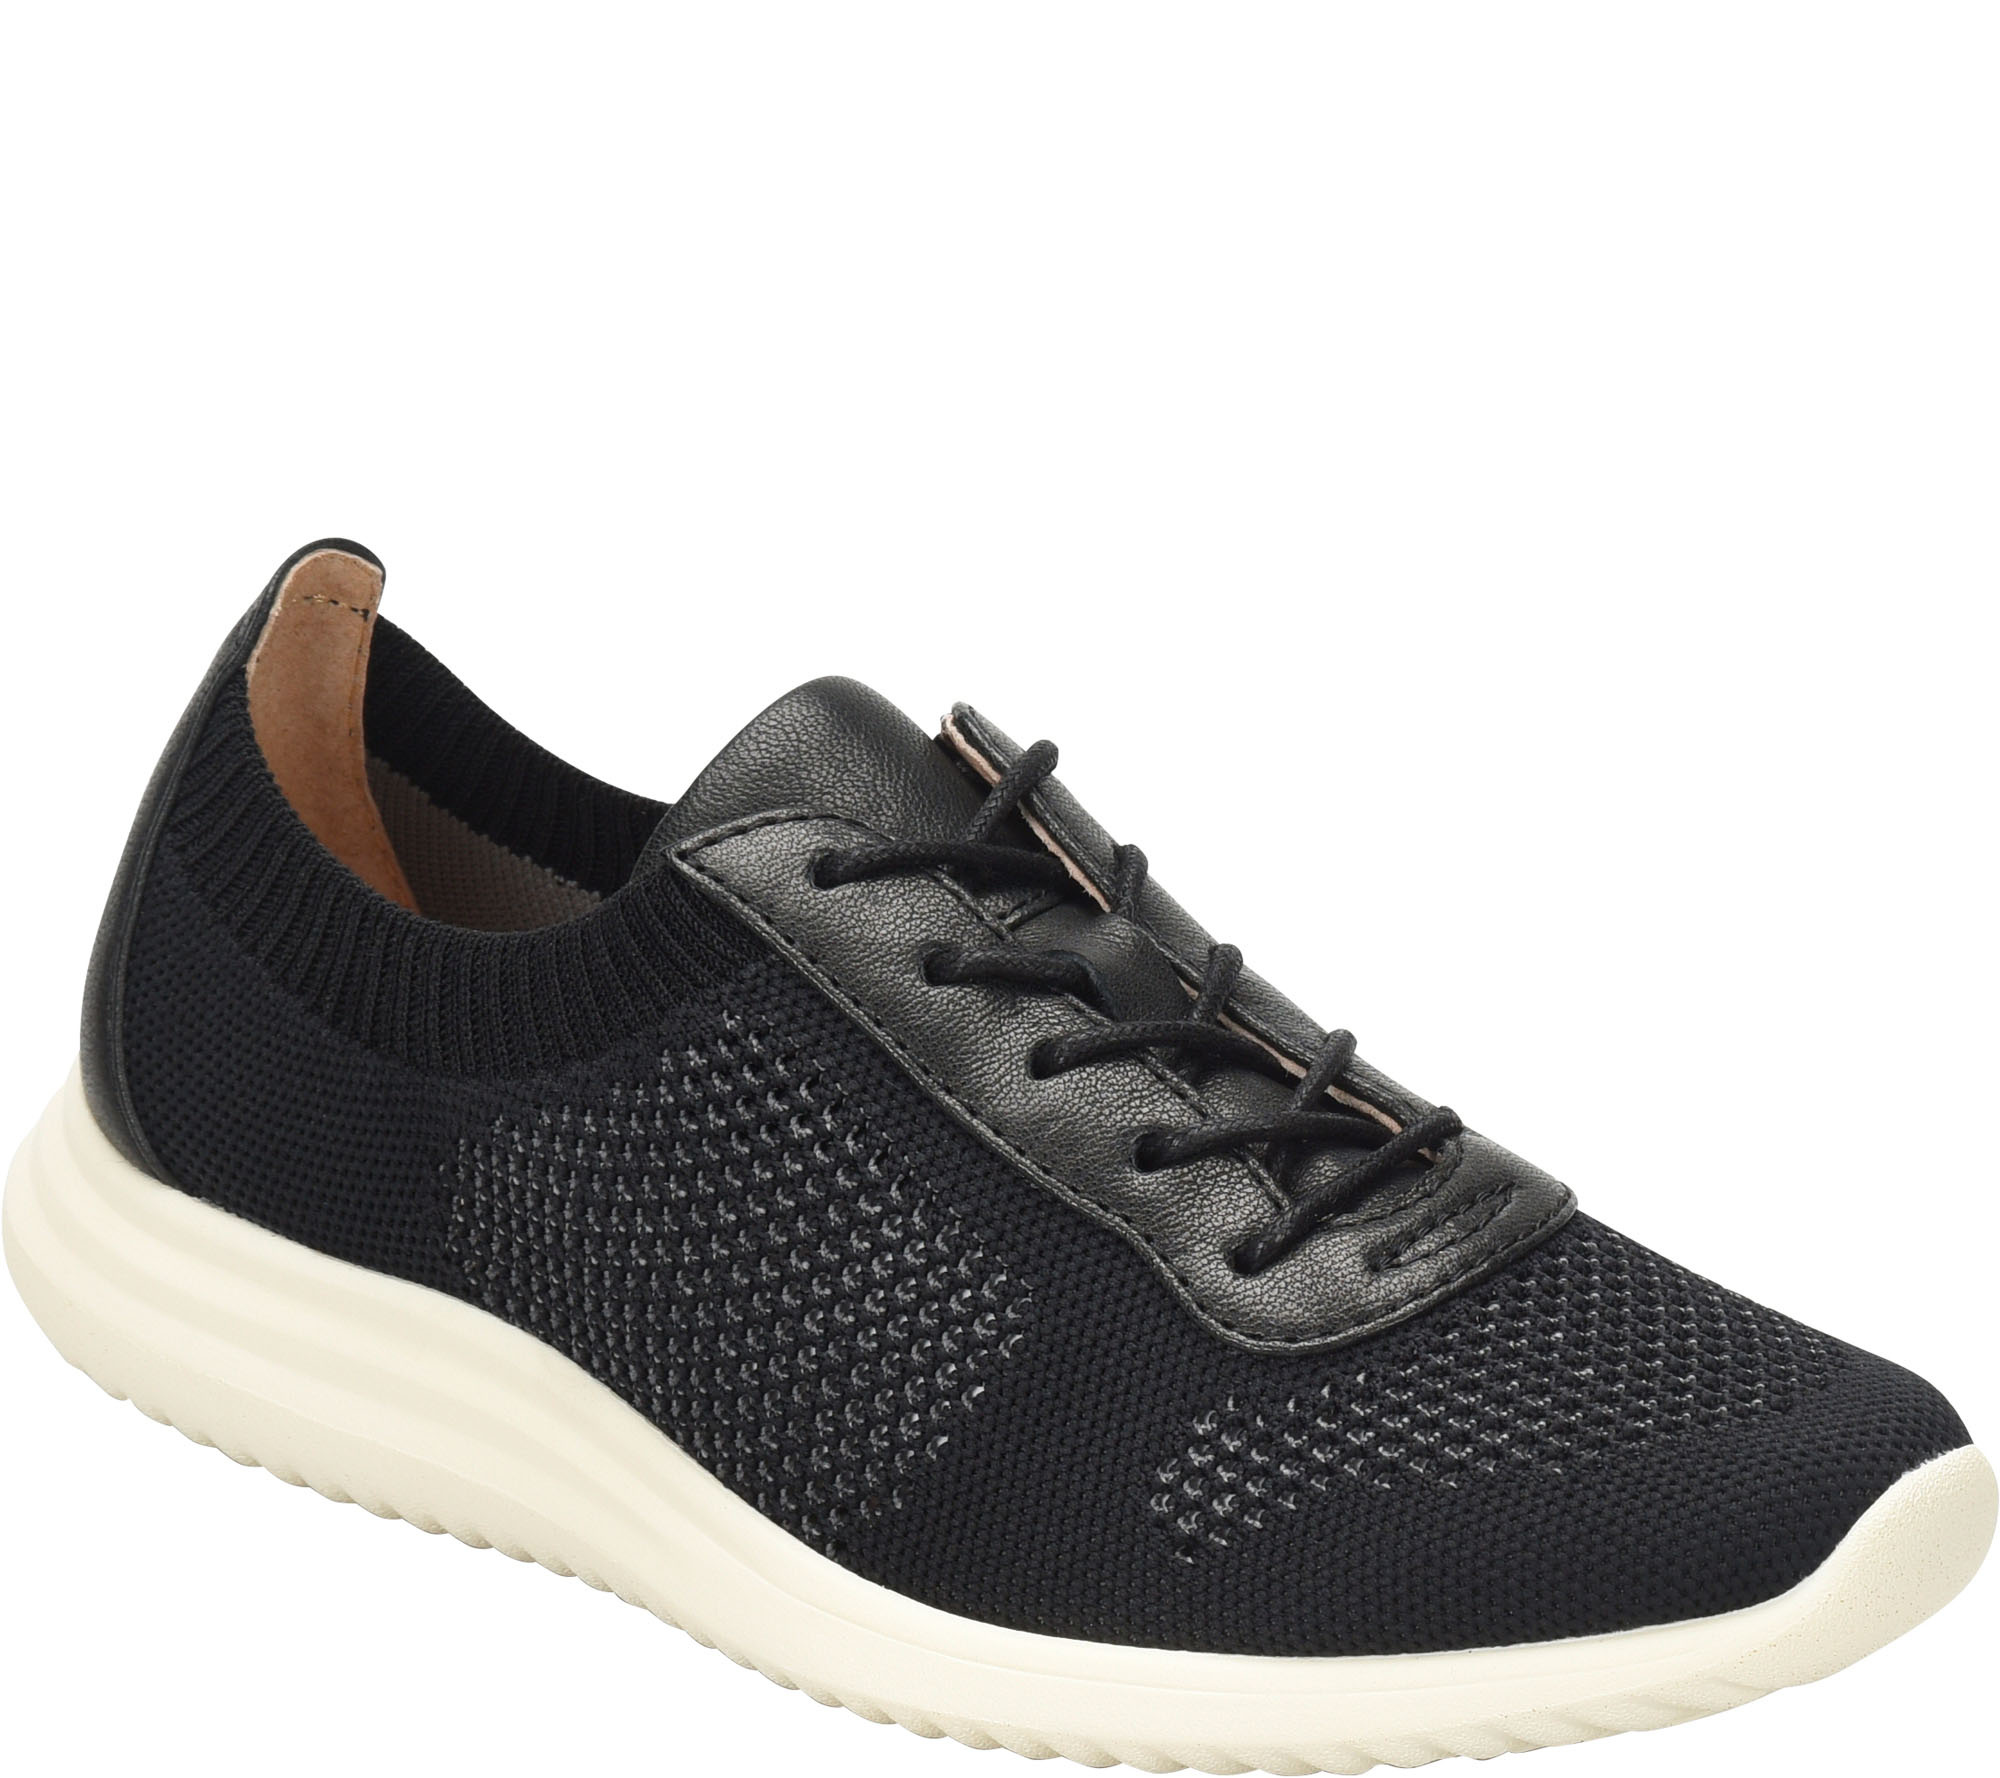 Sofft Knit Fabric Sneakers - Novella